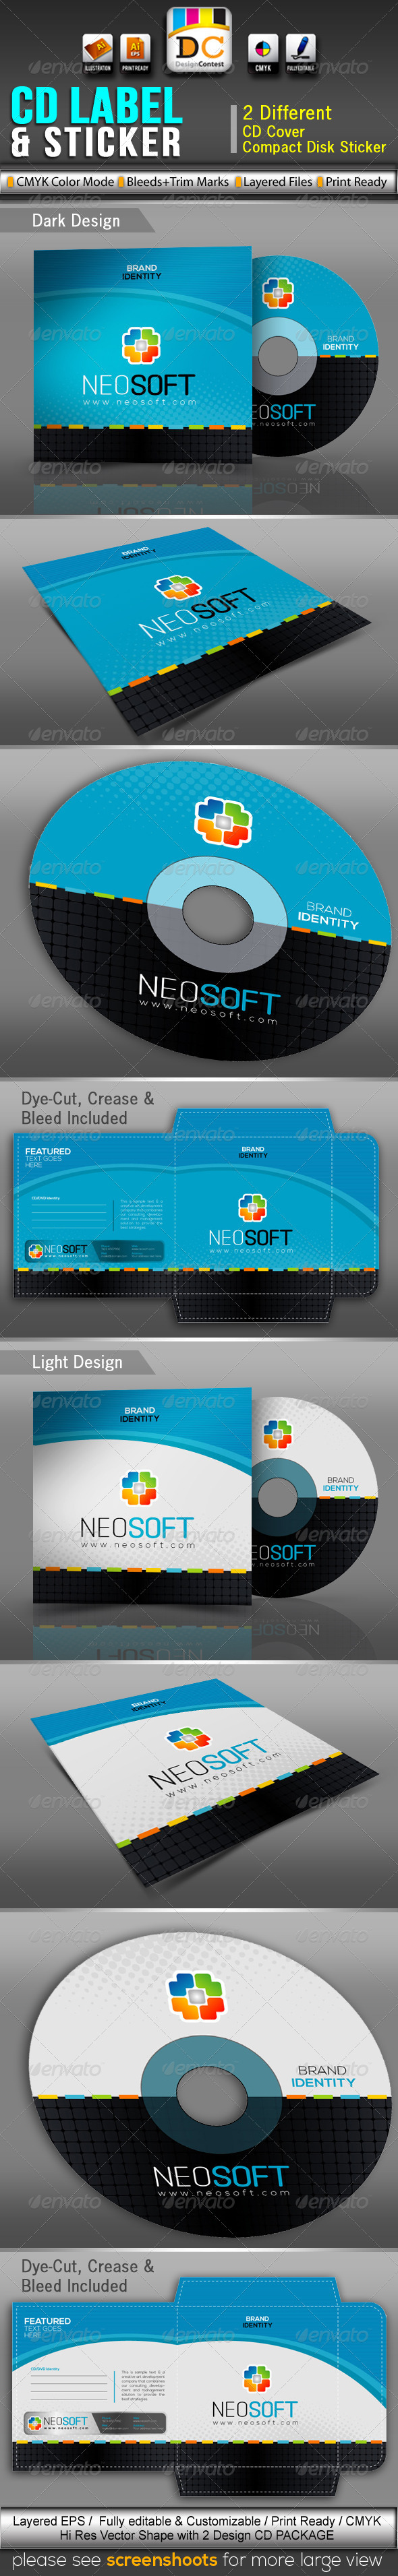 GraphicRiver NeoSoft CD Sleeve Label & Sticker 3477729